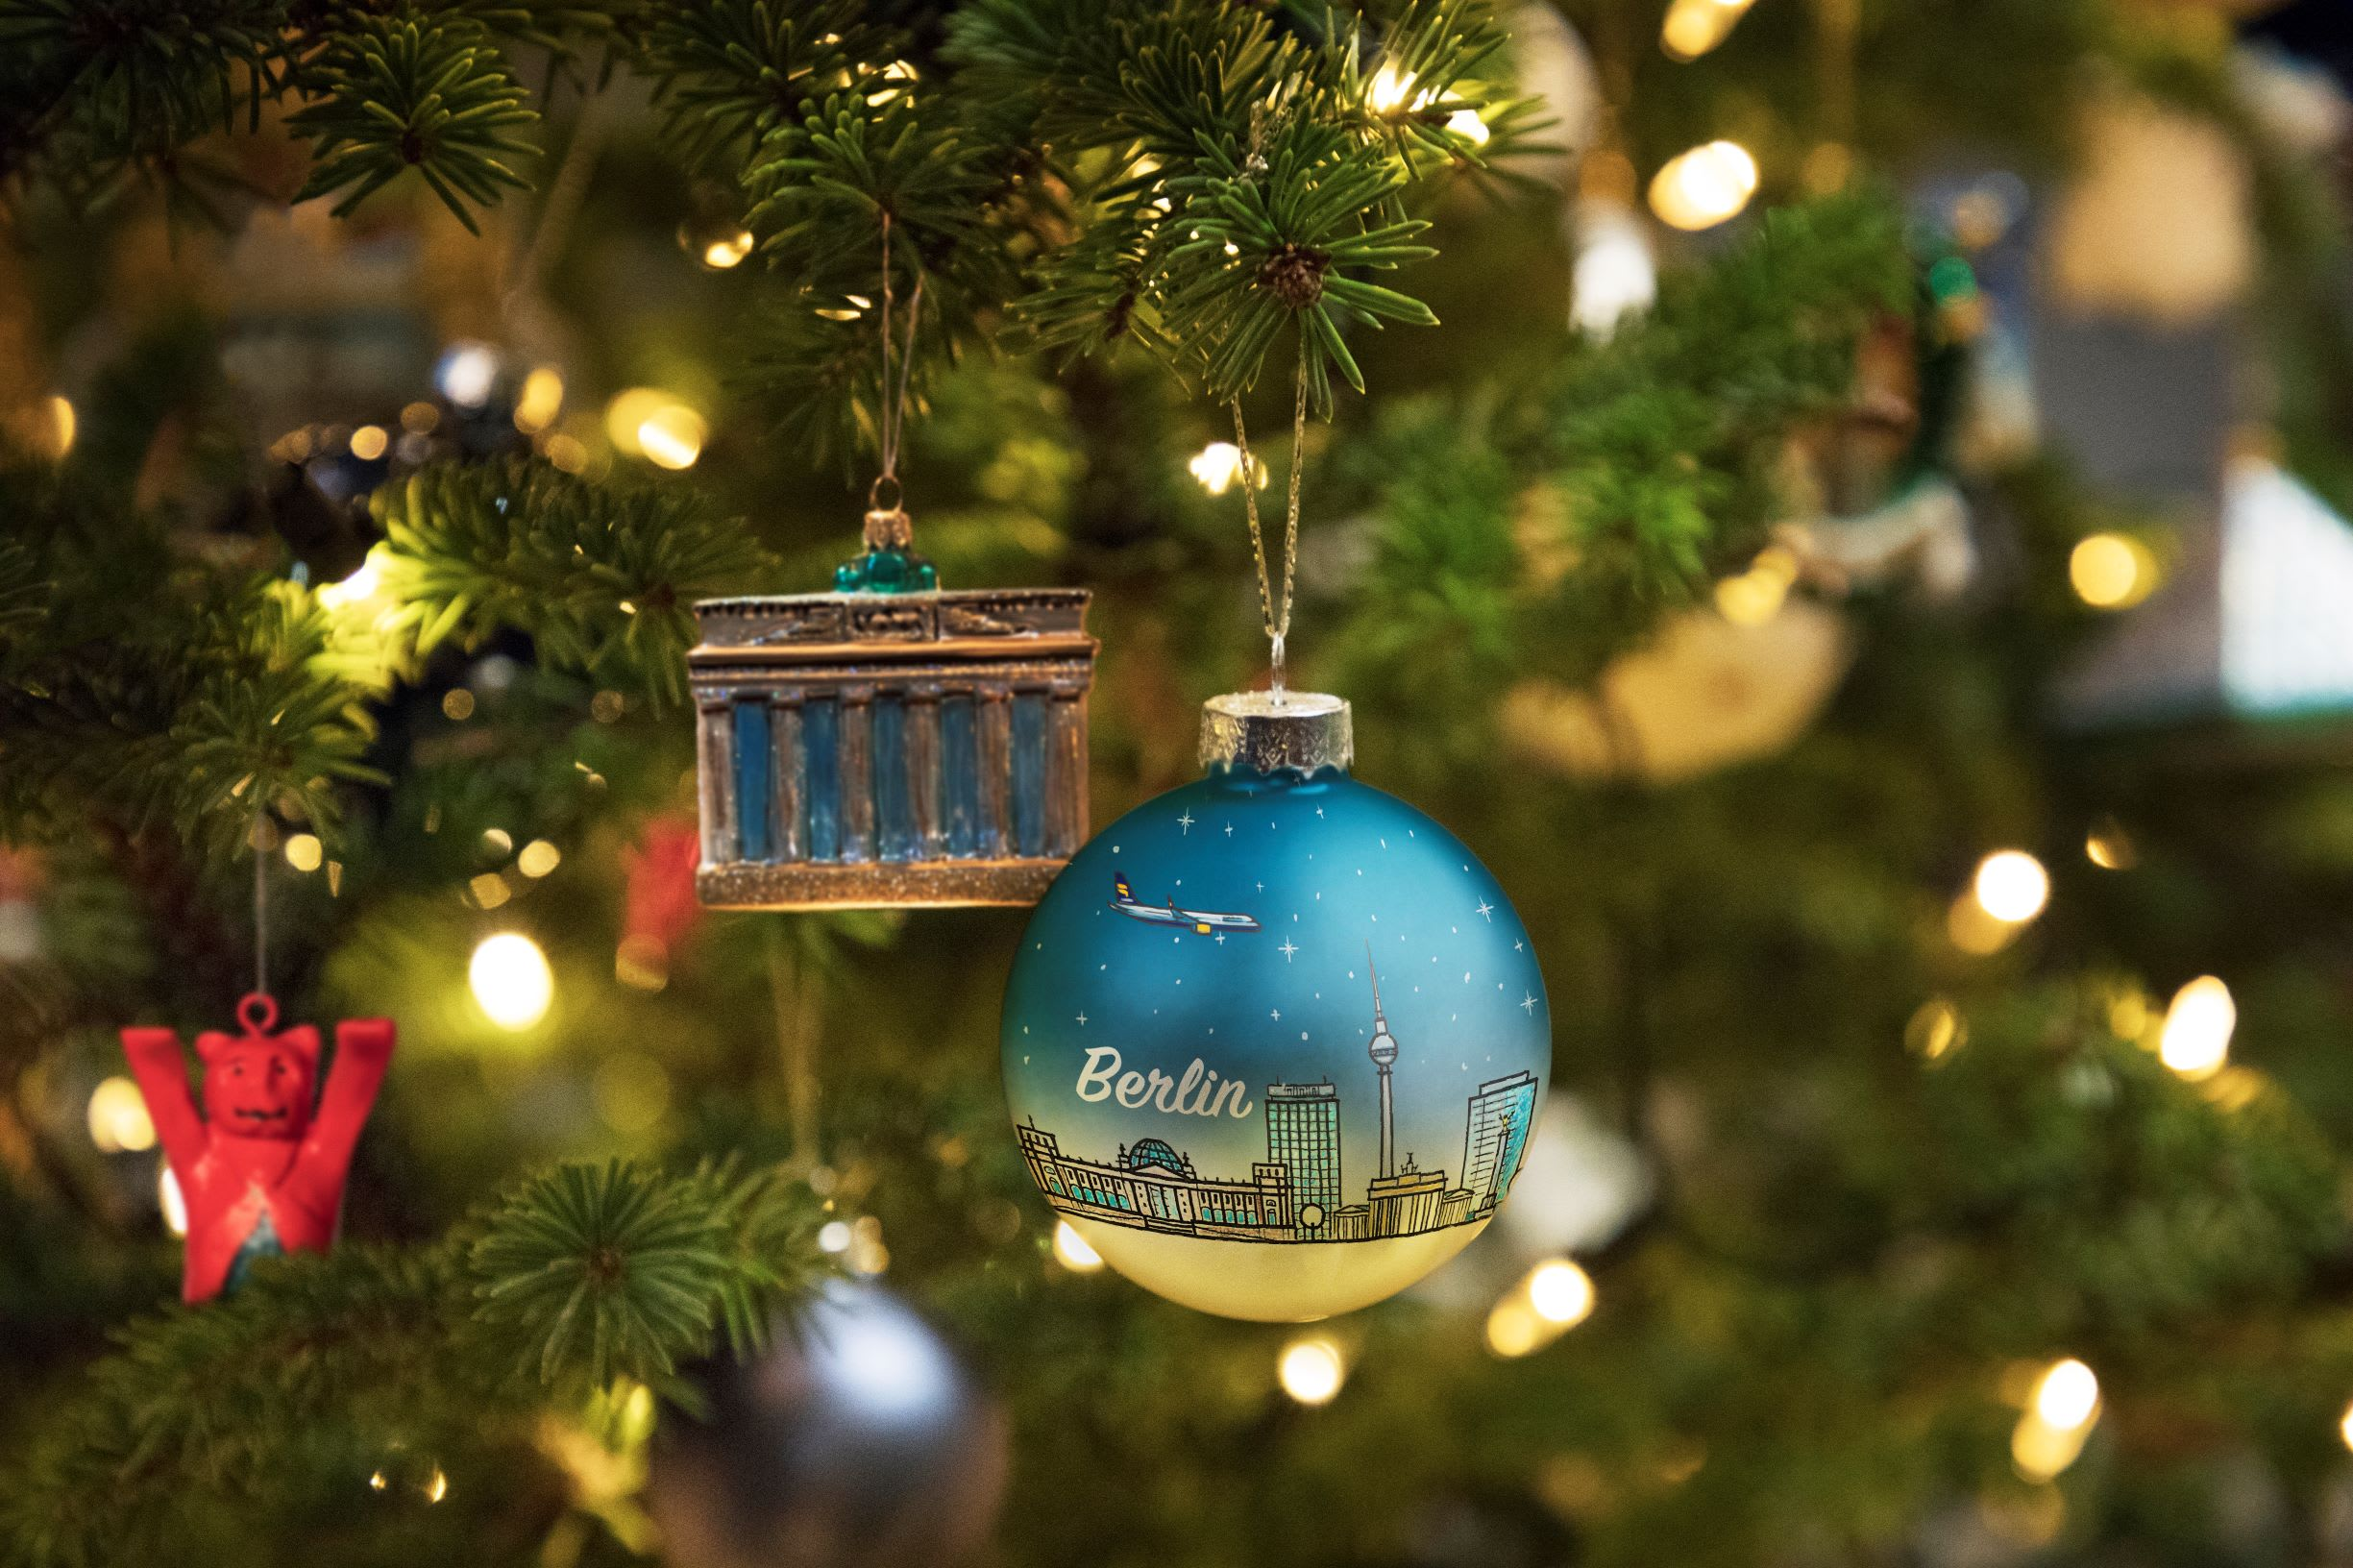 A blue bauble which reads 'Berlin' and has a city scape scene, positioned next to a decoration of the Brandenberg gate, both hanging from a green Christmas tree